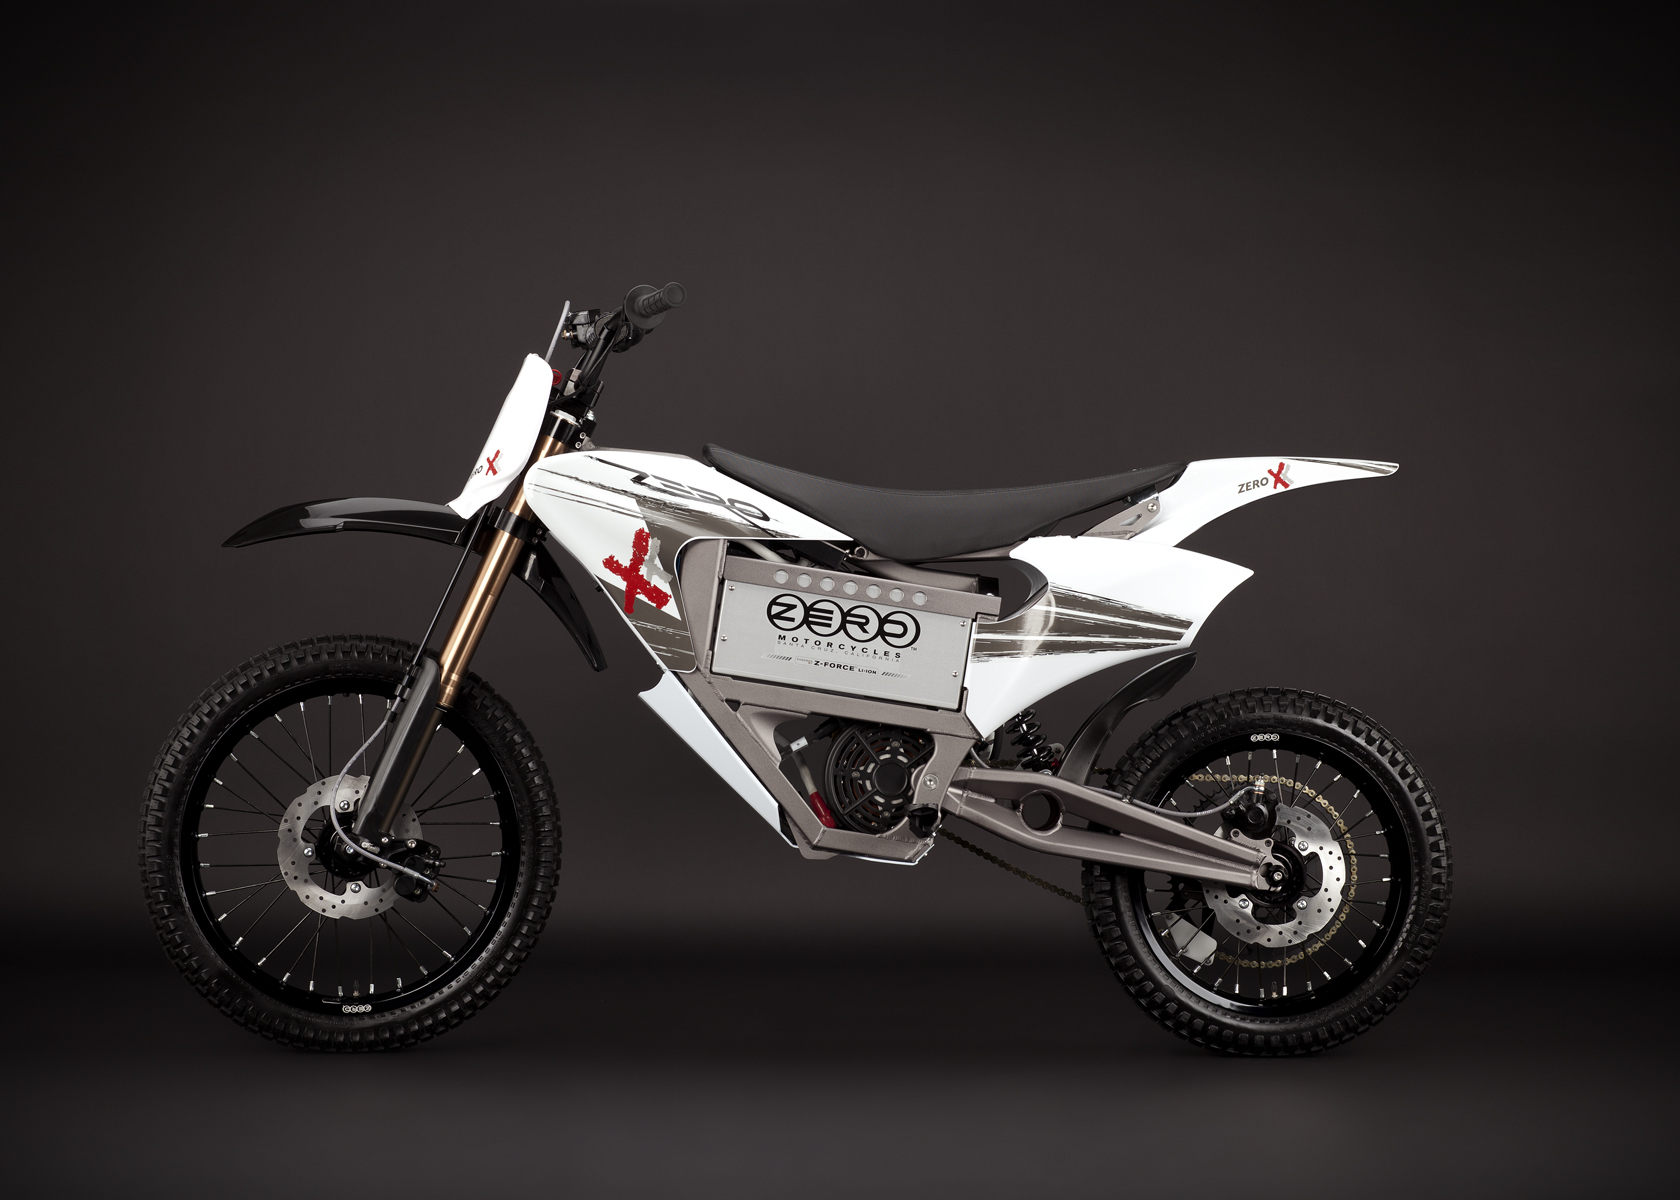 '.2011 Zero X Electric Motorcycle: Profile Left, Dirt Model.'